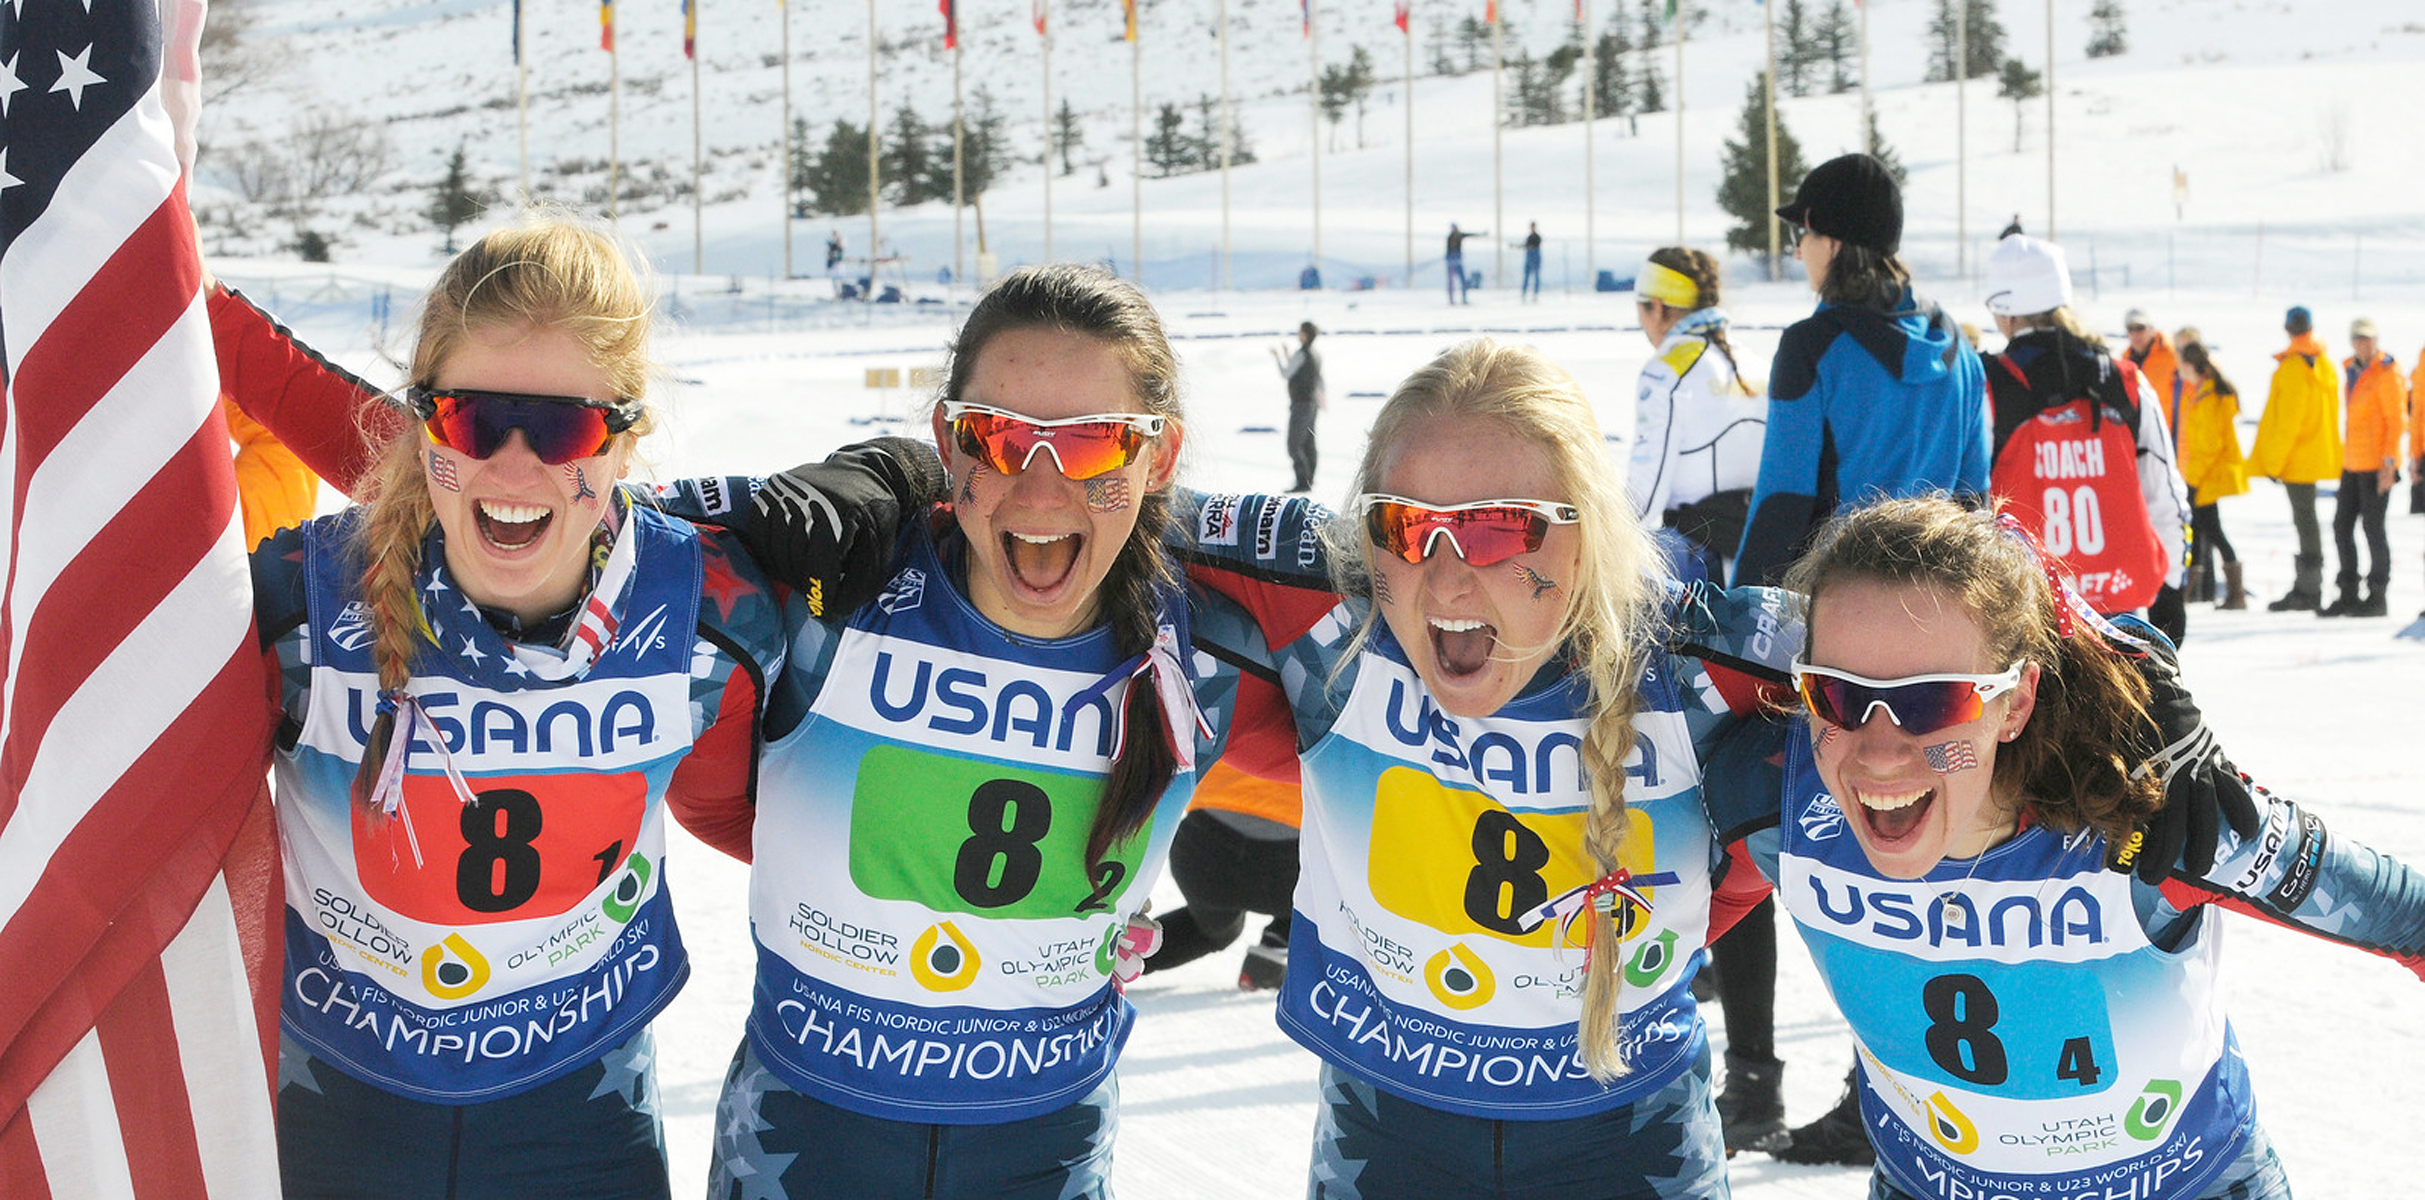 Junior/U23 Cross Country World Ski Championships Criteria